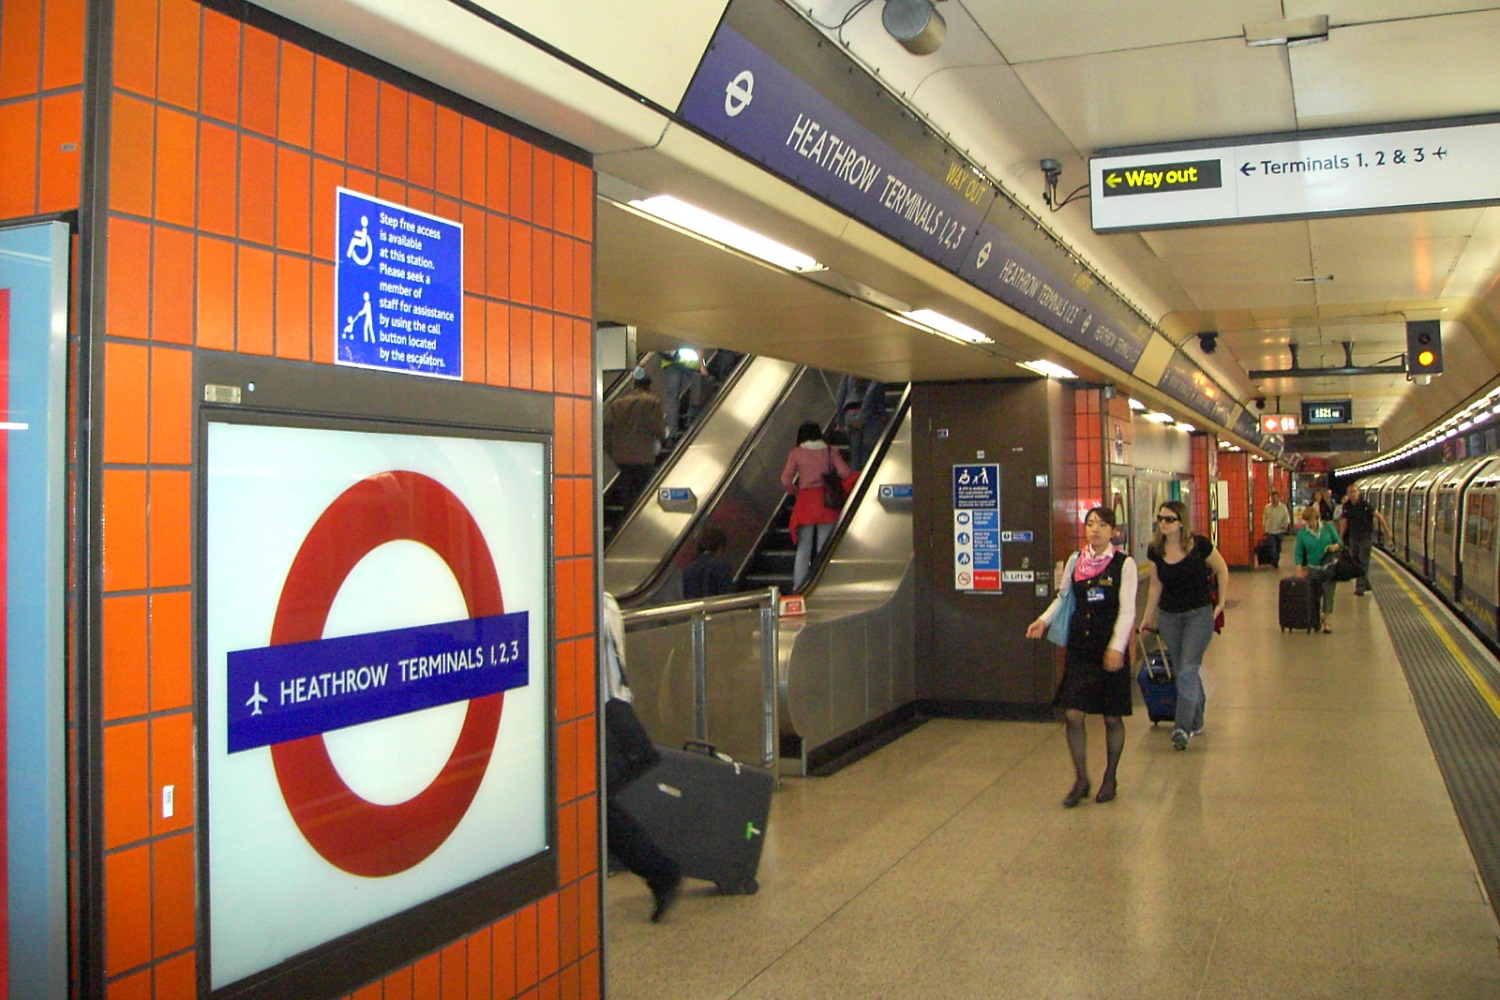 Image of Heathrow Terminals 1, 2, & 3 Underground Station.